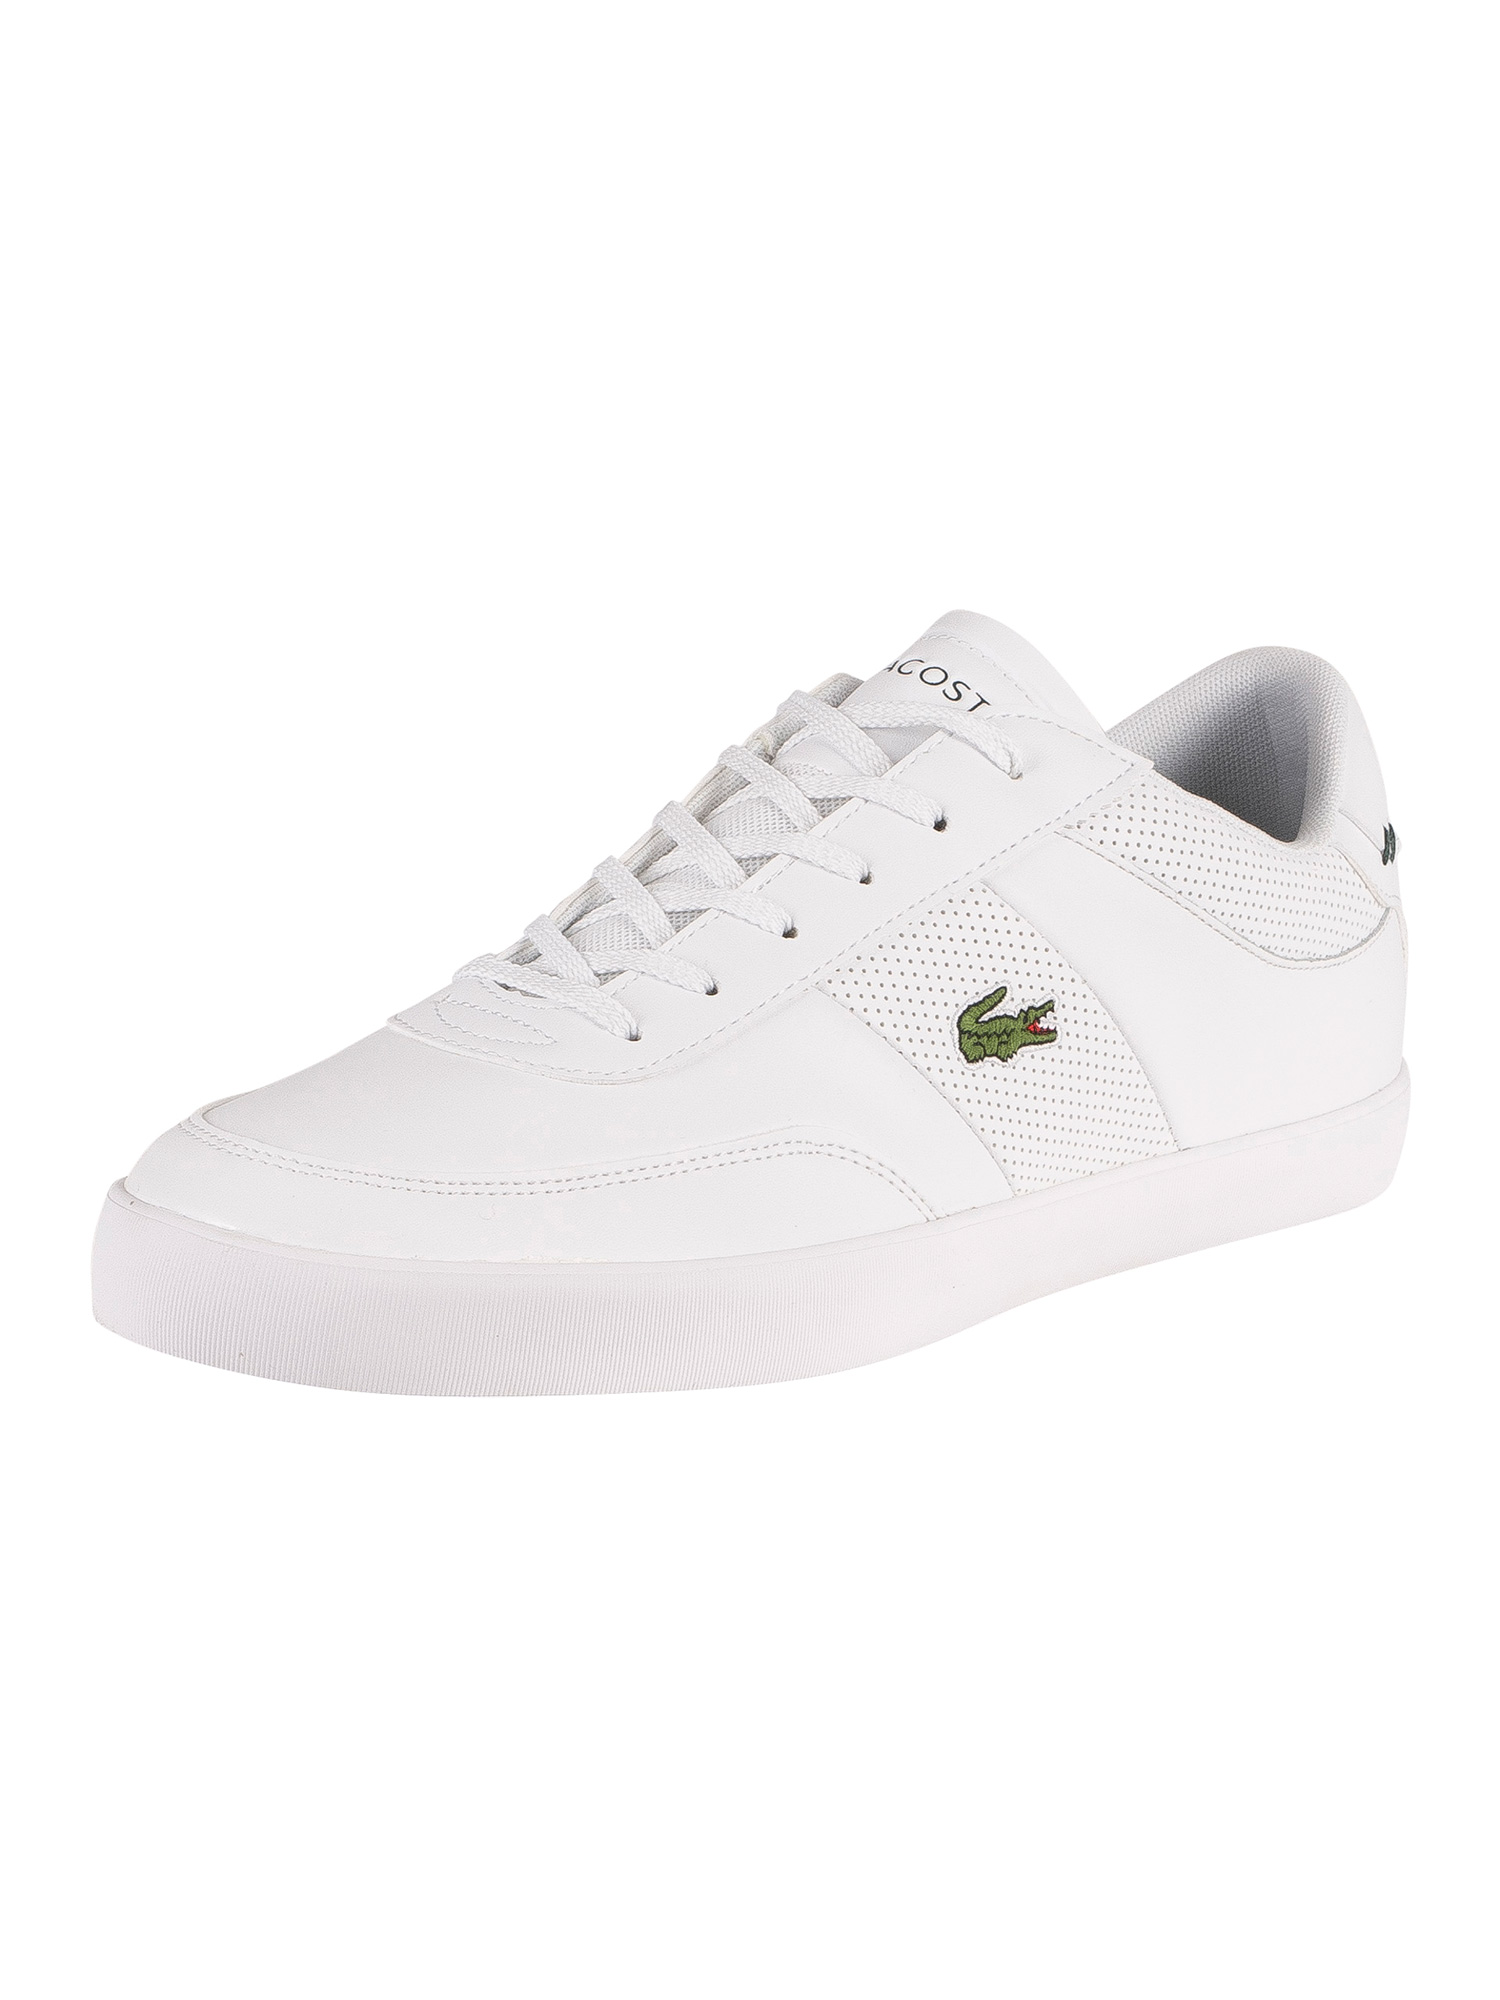 Court Master 0120 1 CMA Leather Trainers